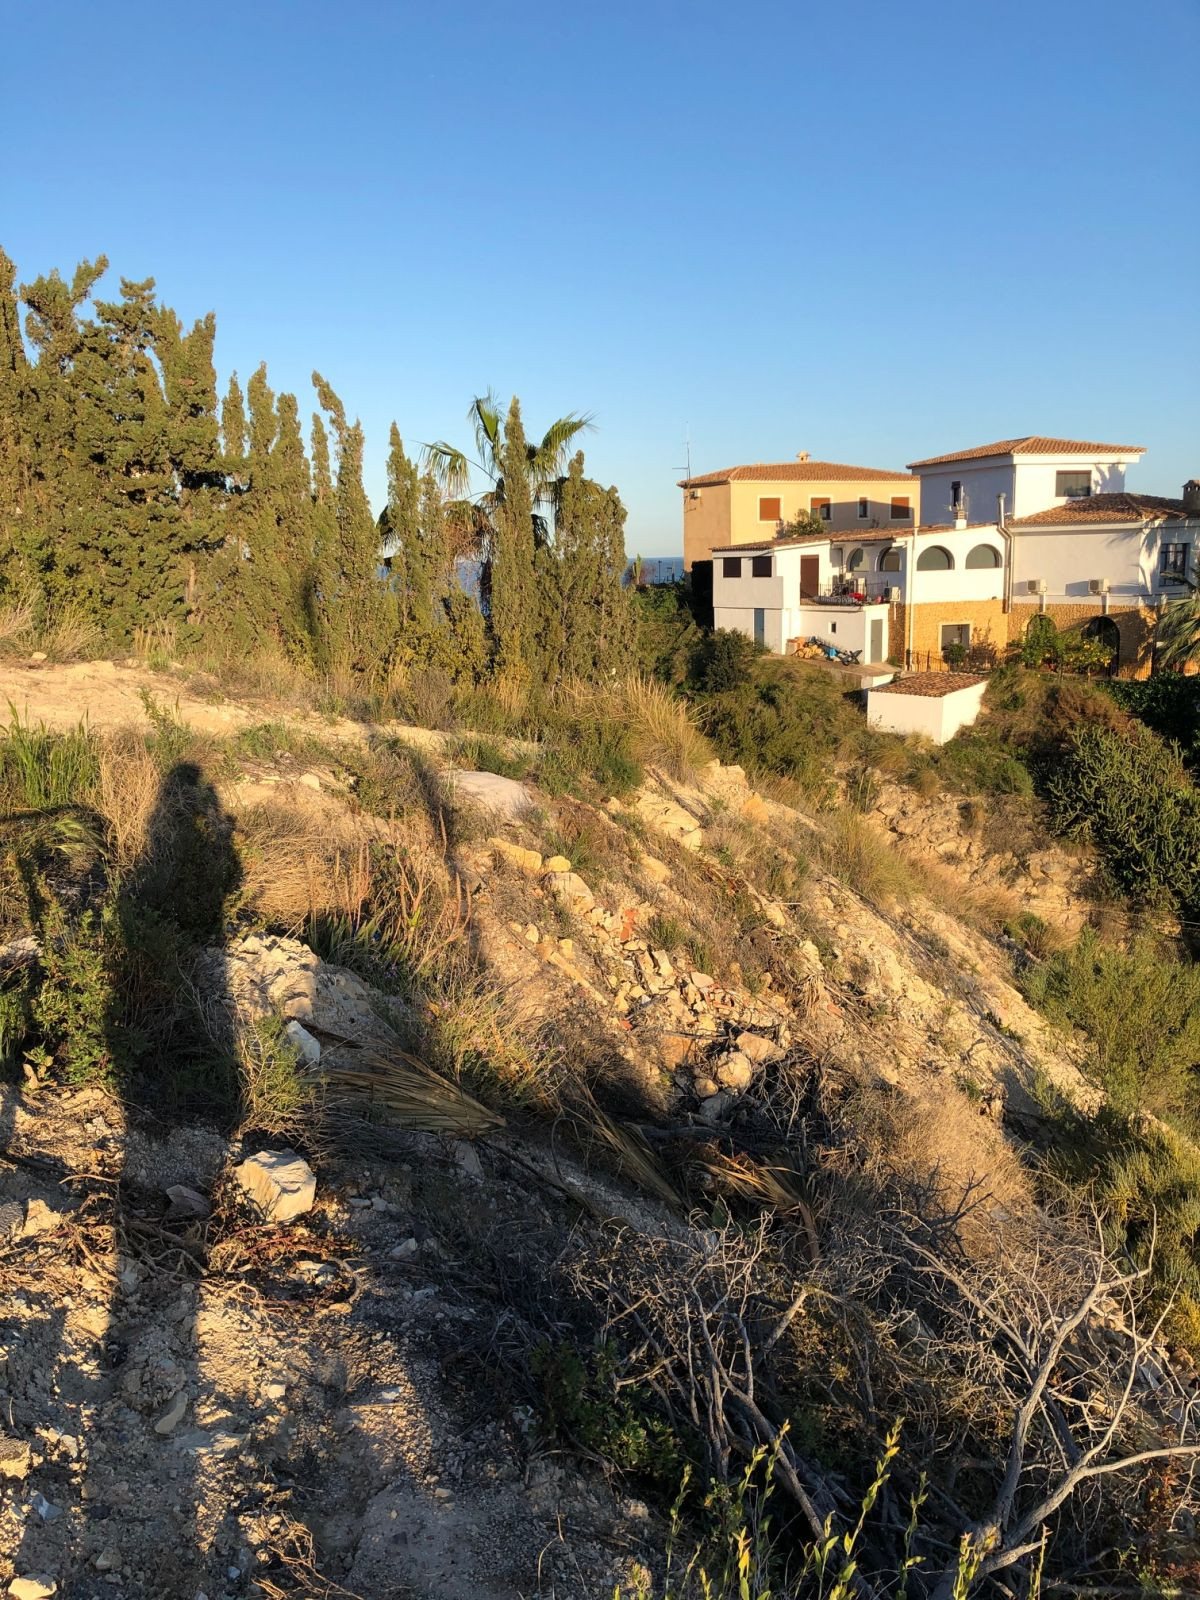 LAND FOR SALE IN COVETA FUMA, EL CAMPELLO  Spectacular, large plot for sale in sought after area of ,Spain